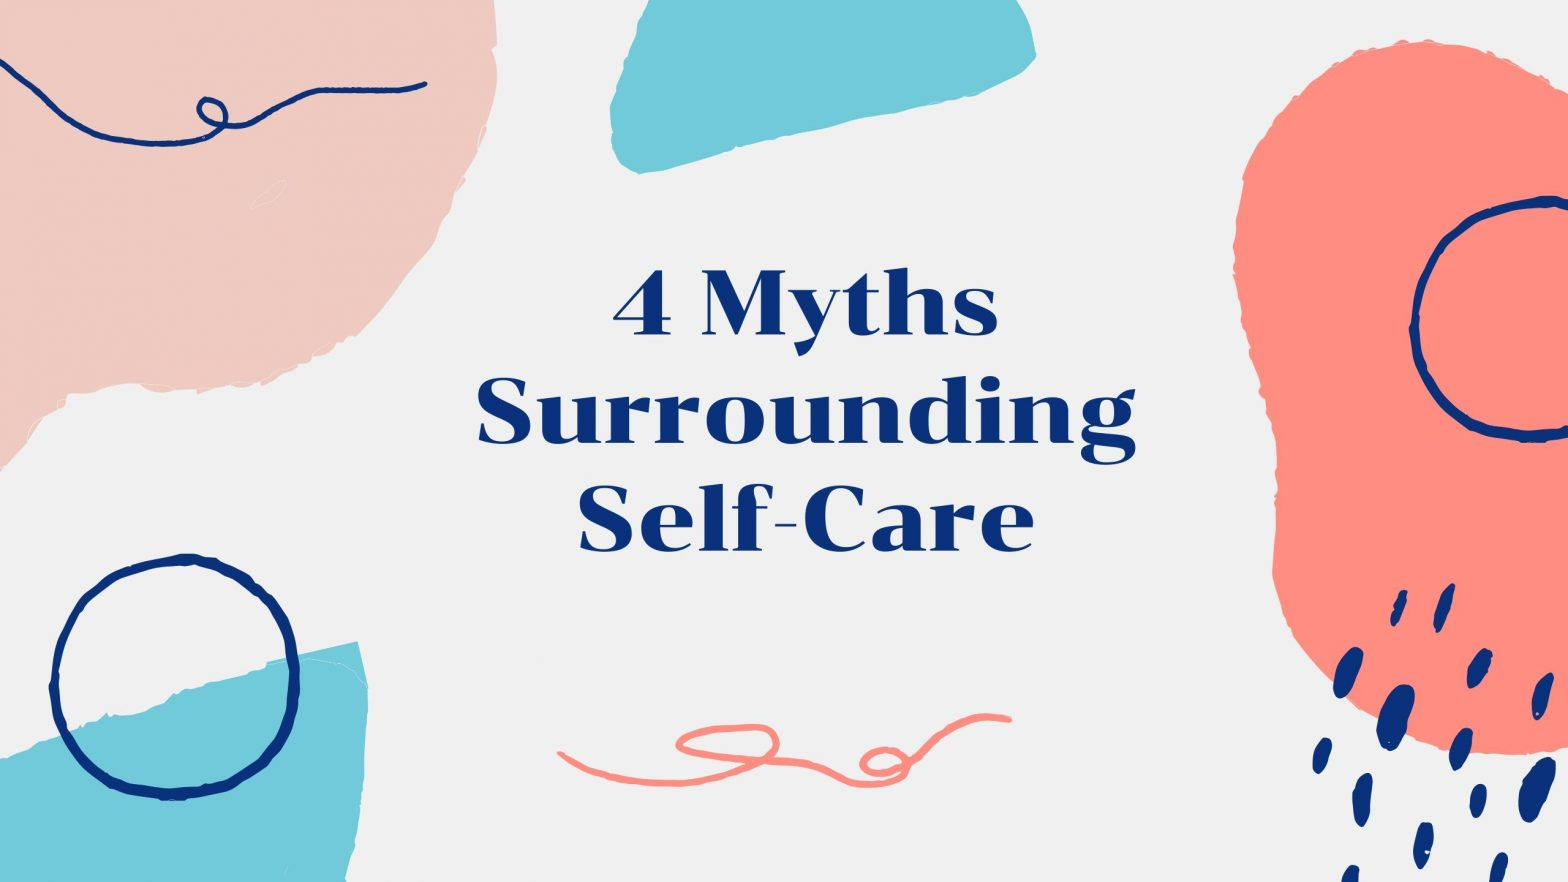 Abstract photo with words 4 myths surrounding self-care